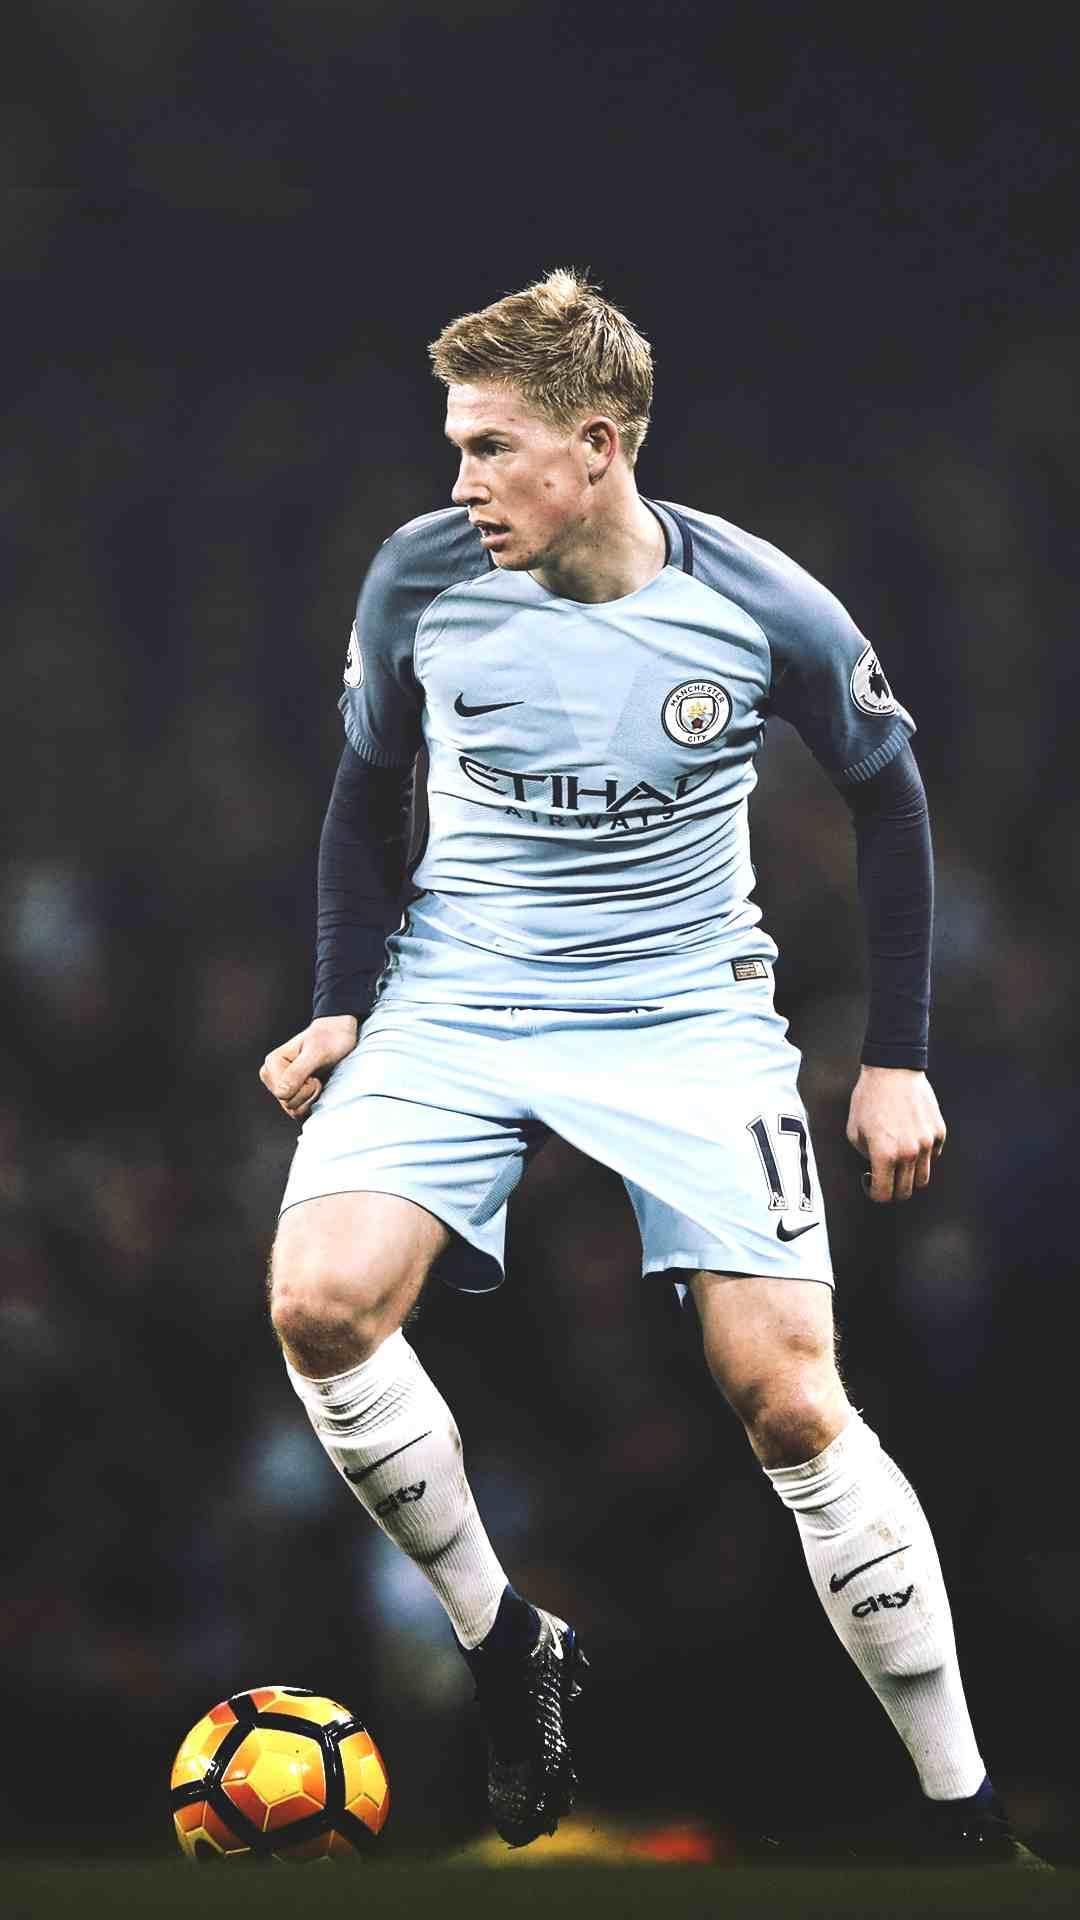 Kevin De Bruyne Wallpapers HD cho Android - Tải về APK